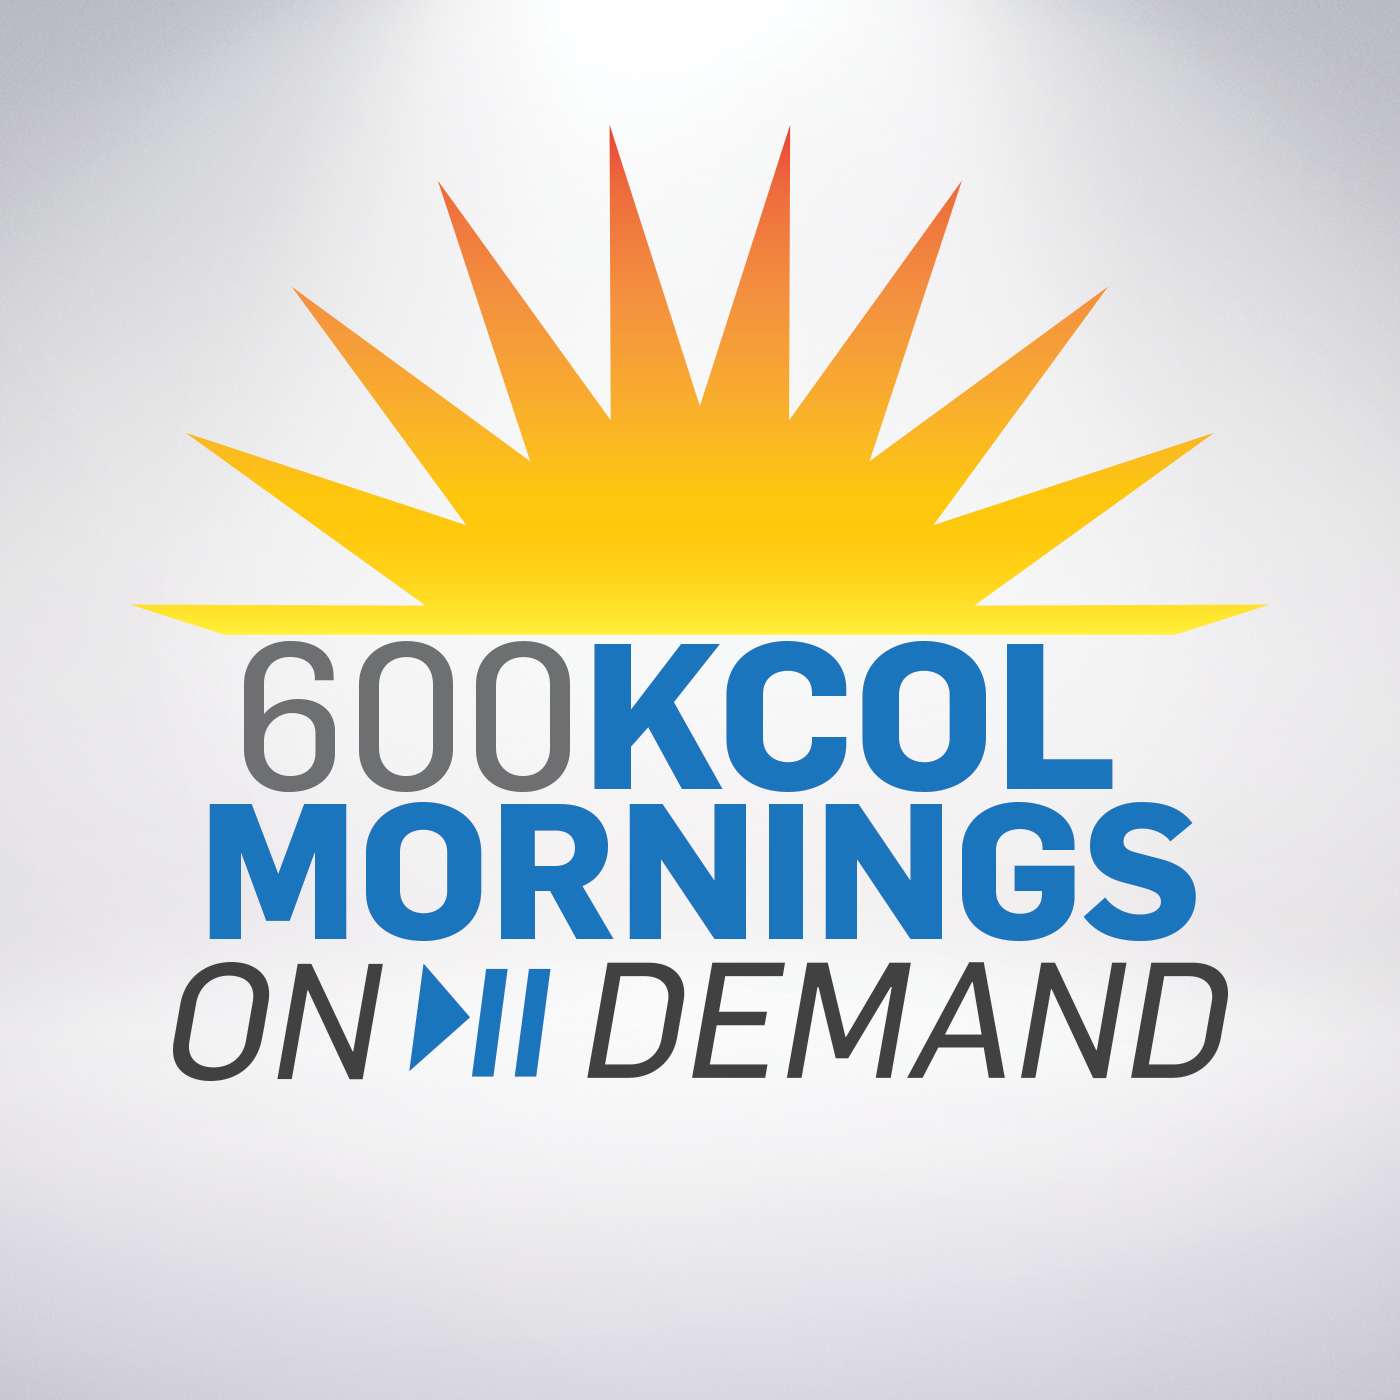 1/12 Steve Laffey on KCOL Mornings